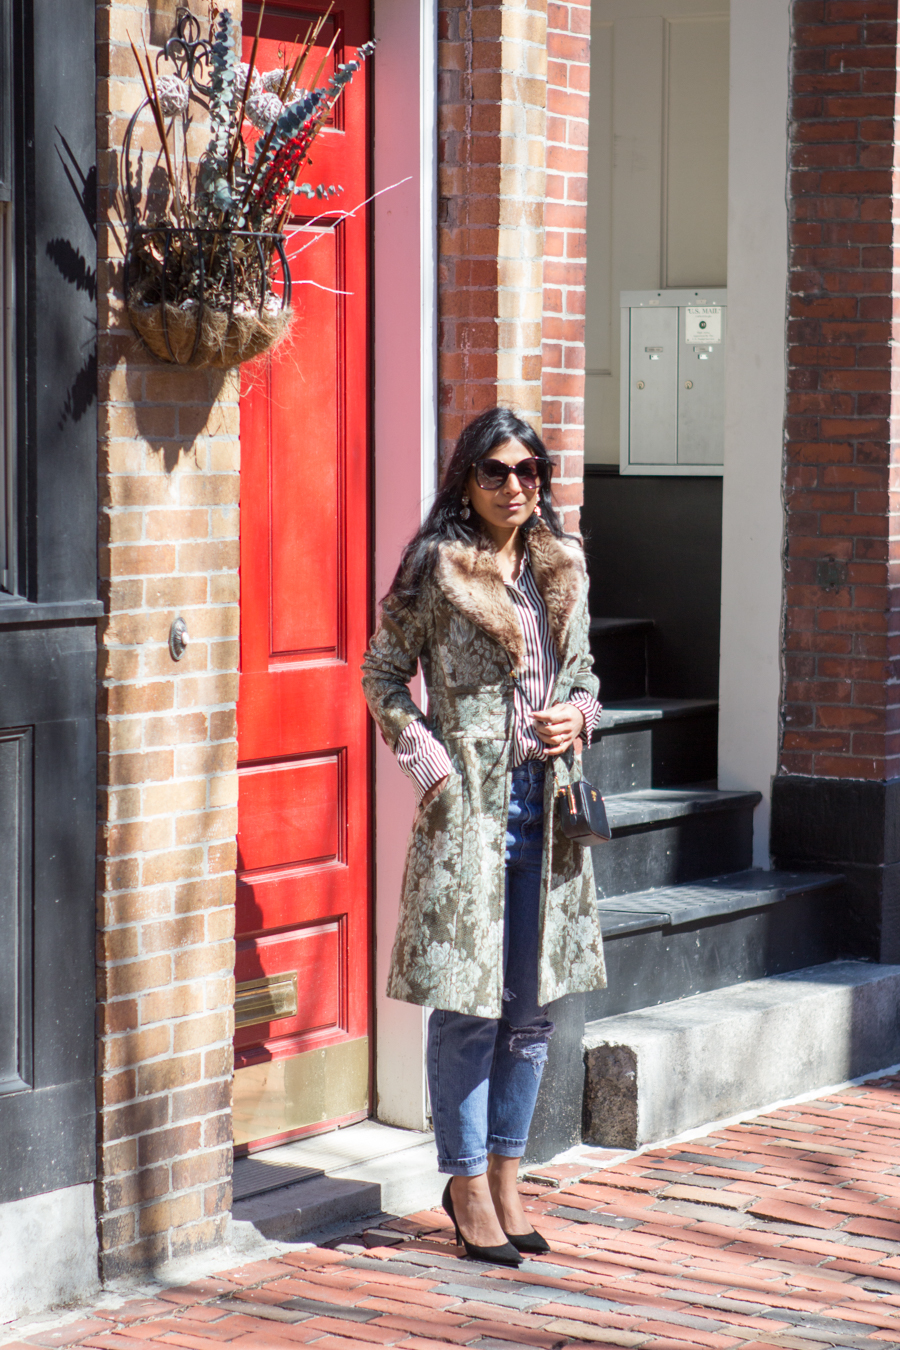 floral jacket, jacquard coat, statement coat, spring style, florals, green coat, mom jeans, black suede pumps, under $100, striped shirt, striped blouse, black and white stripes, eclectic, feminine style, easy glam, petite fashion, boston street style, black mini bag